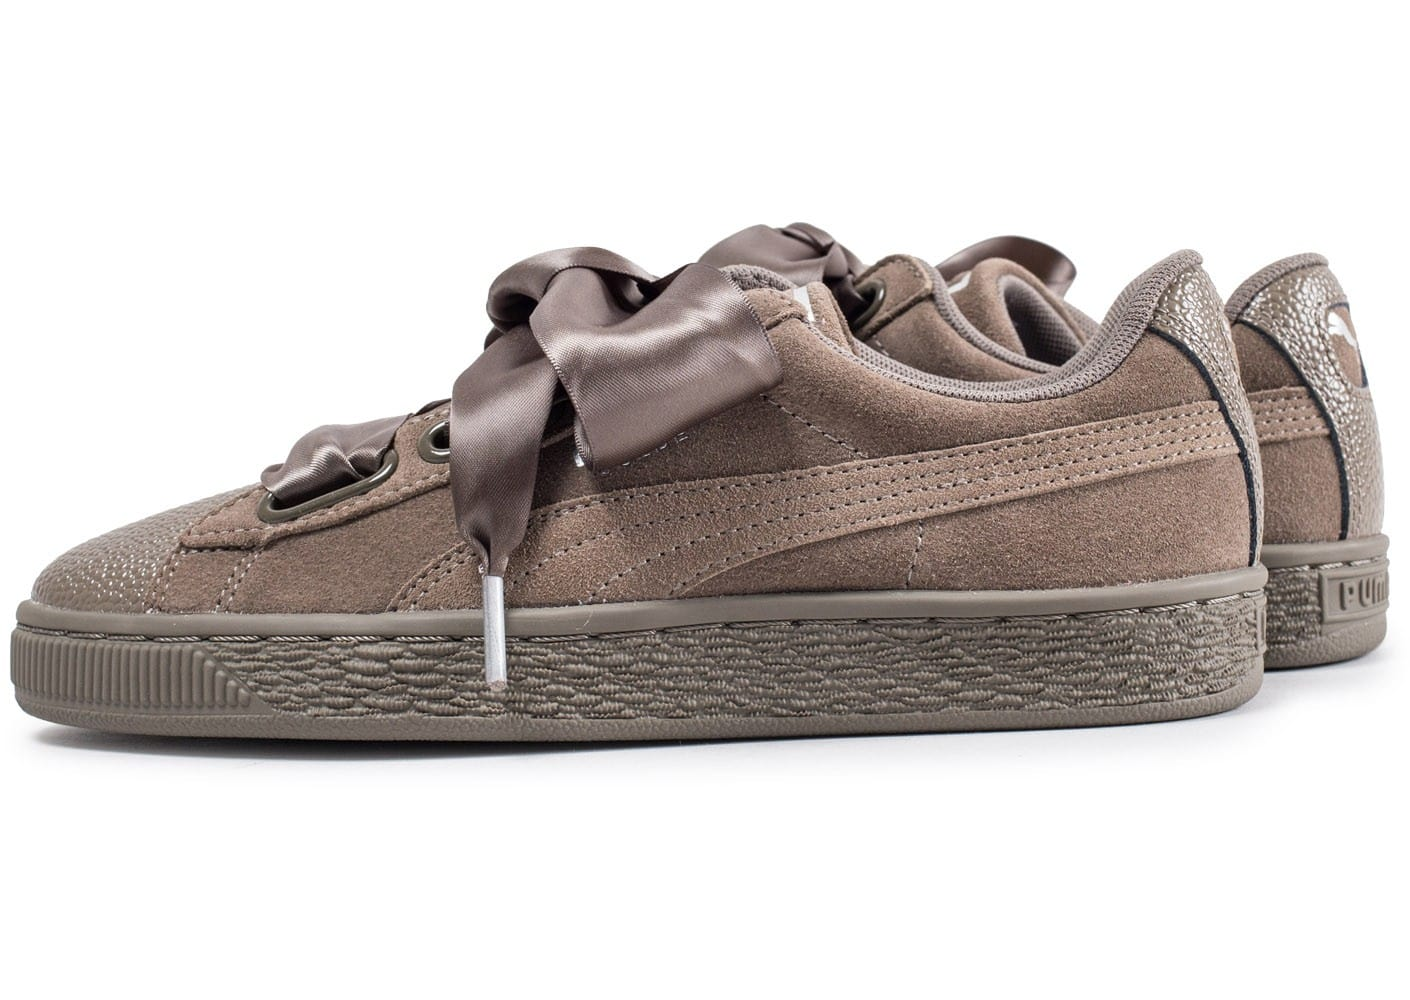 Puma Suede Heart Bubble marron et kaki Chaussures Baskets